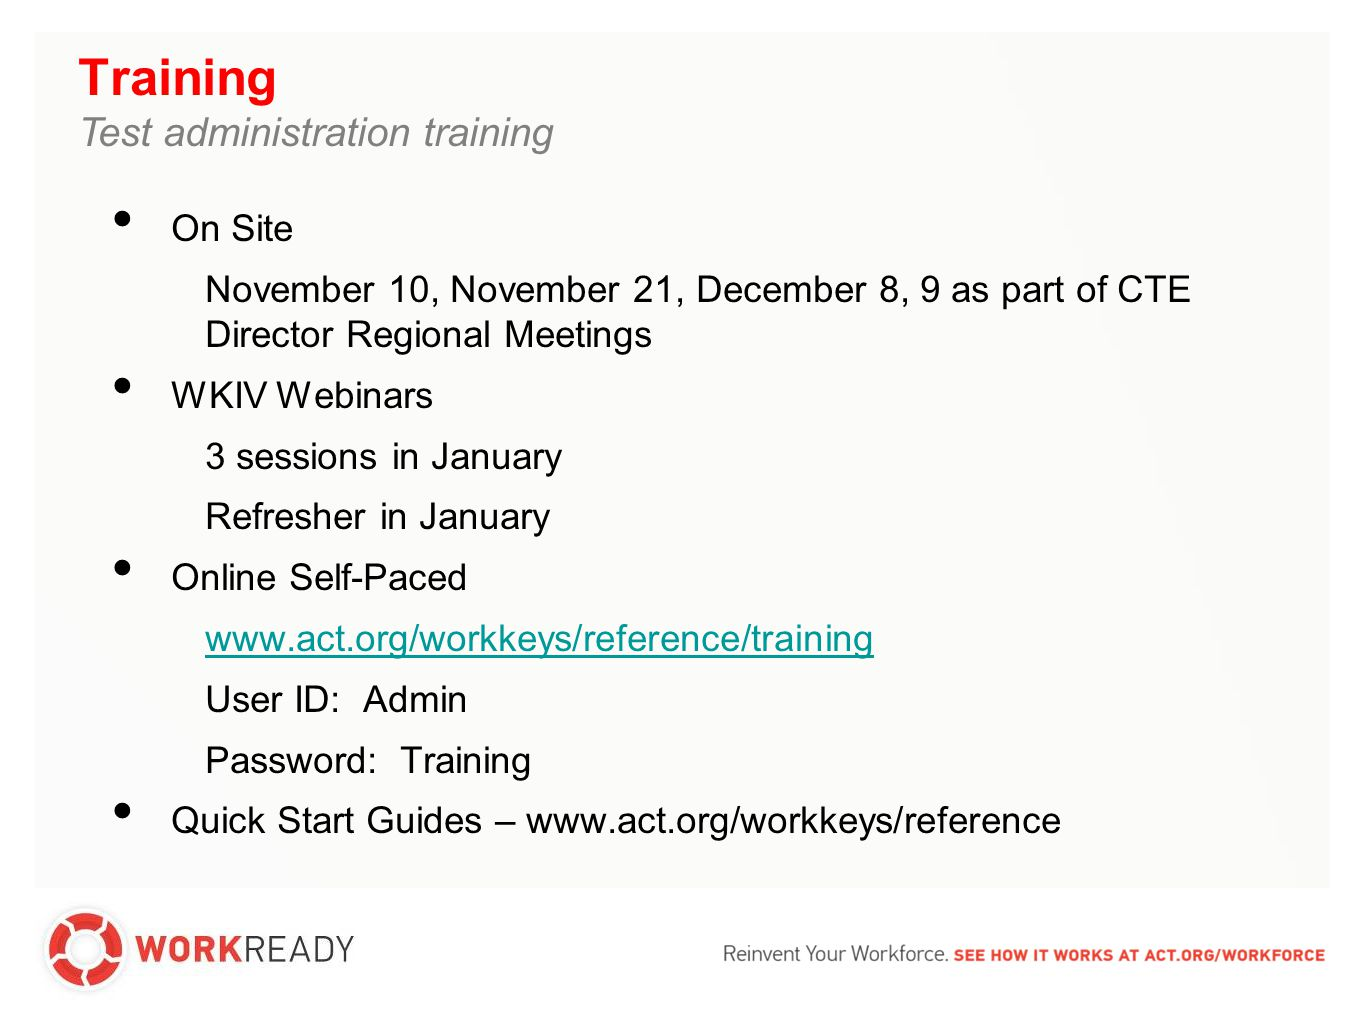 Training Test administration training On Site November 10, November 21, December 8, 9 as part of CTE Director Regional Meetings WKIV Webinars 3 sessions in January Refresher in January Online Self-Paced www.act.org/workkeys/reference/training User ID: Admin Password: Training Quick Start Guides – www.act.org/workkeys/reference